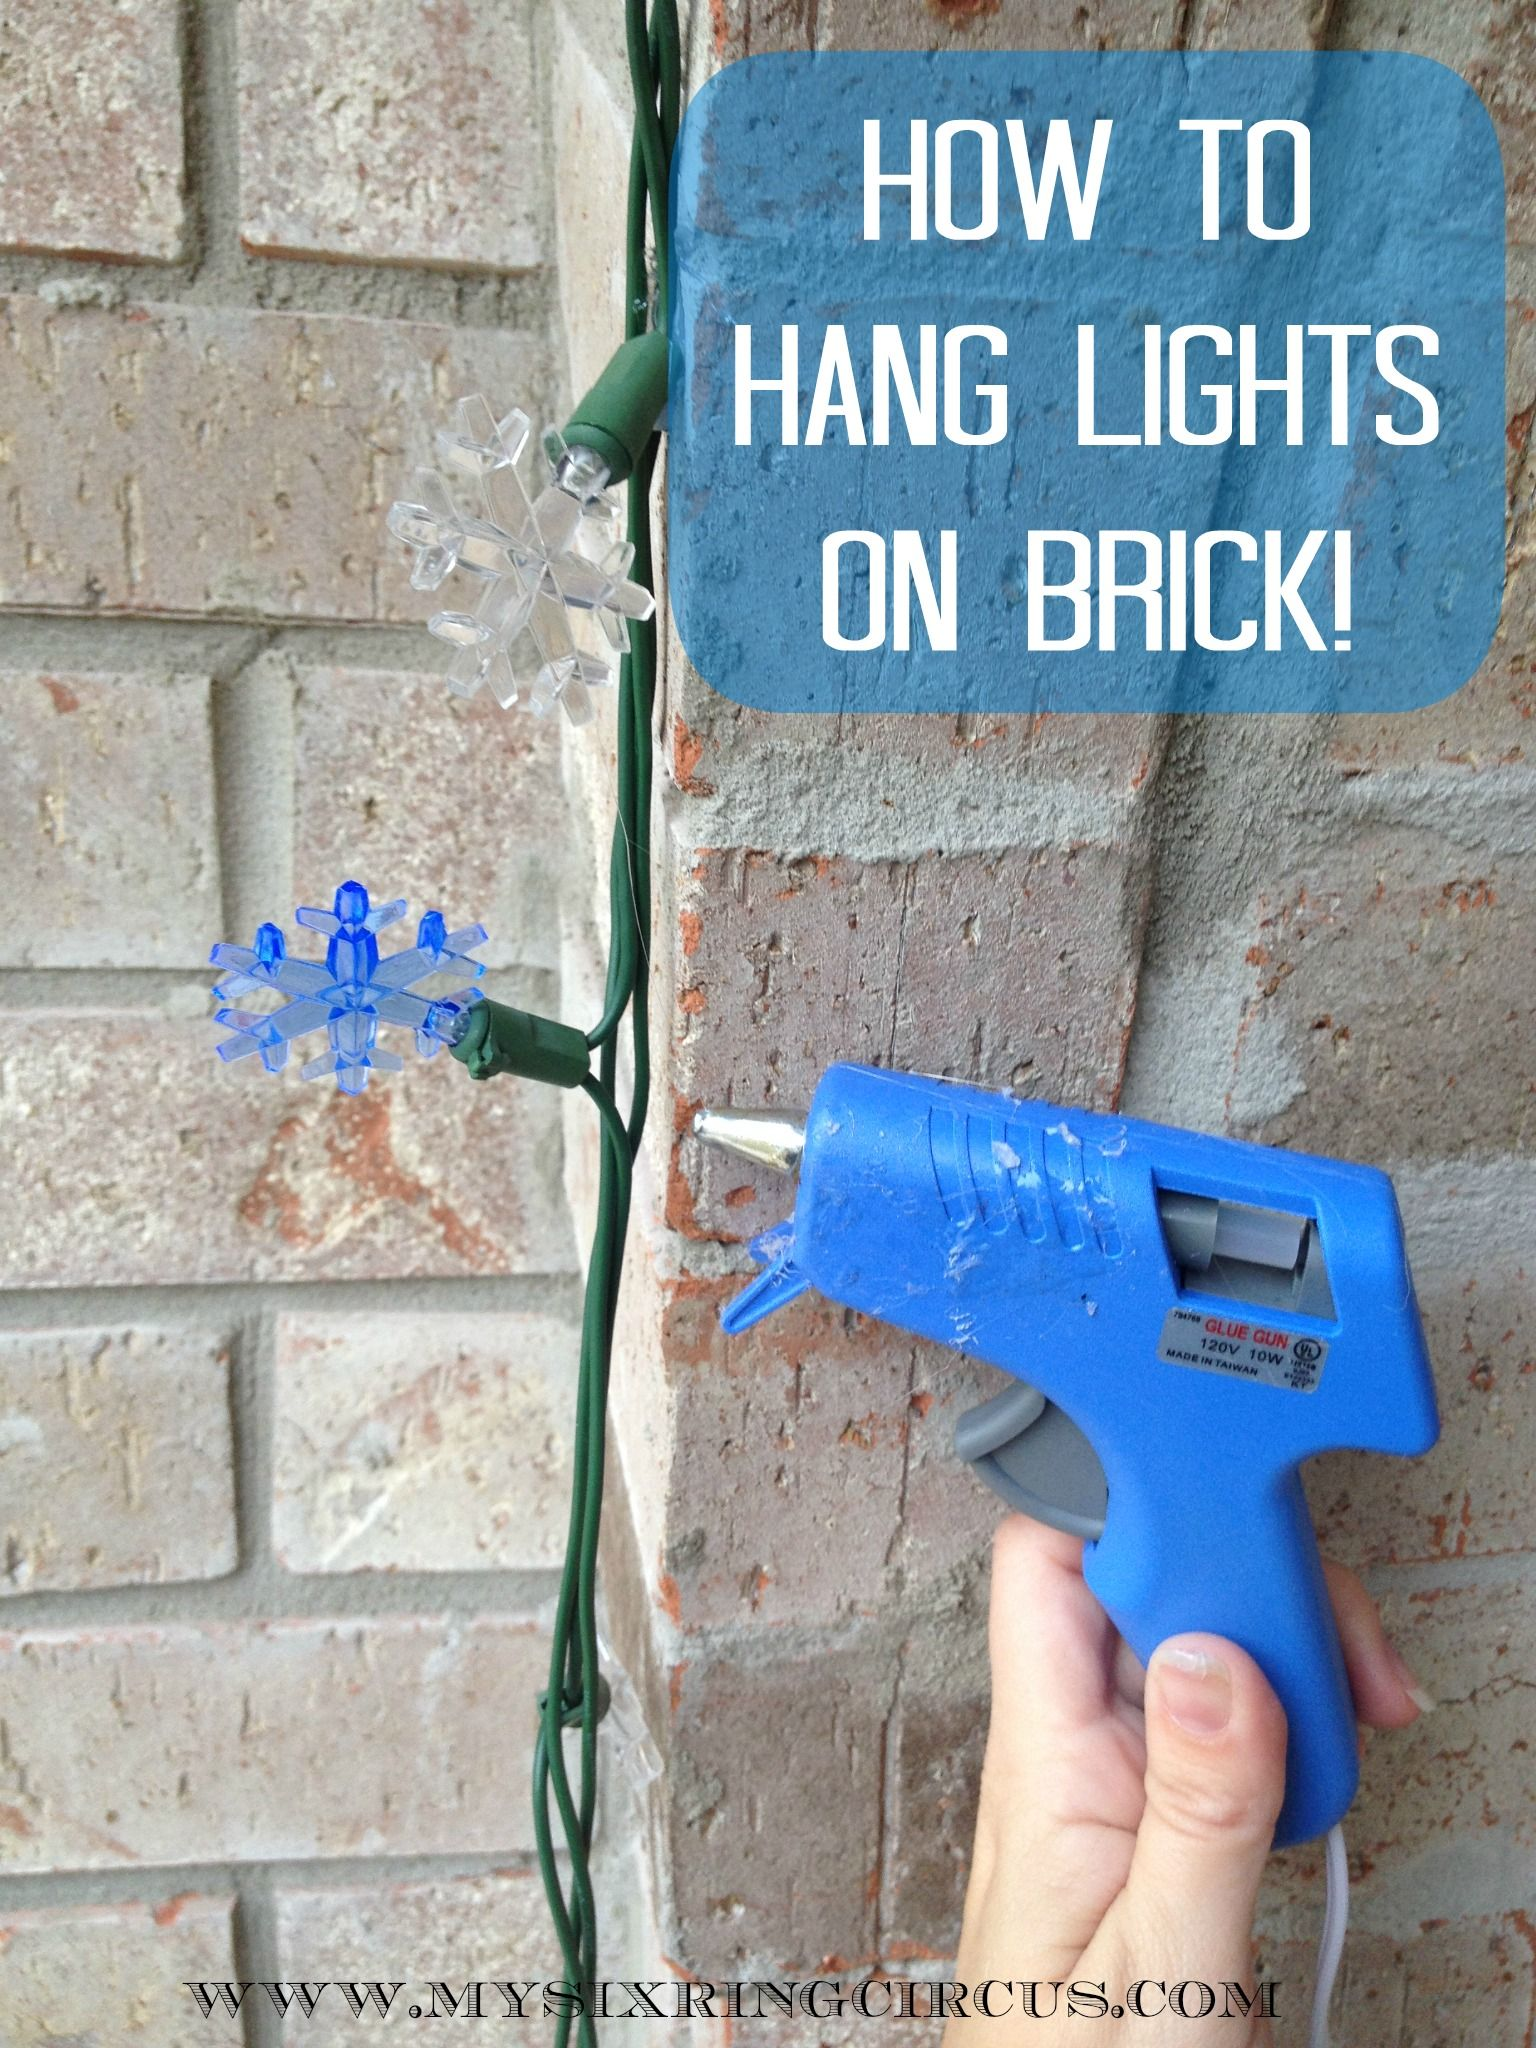 How To Hang Lights On Brick In Three Easy Steps This Will Save You Time And Money My Sis Ring Circus